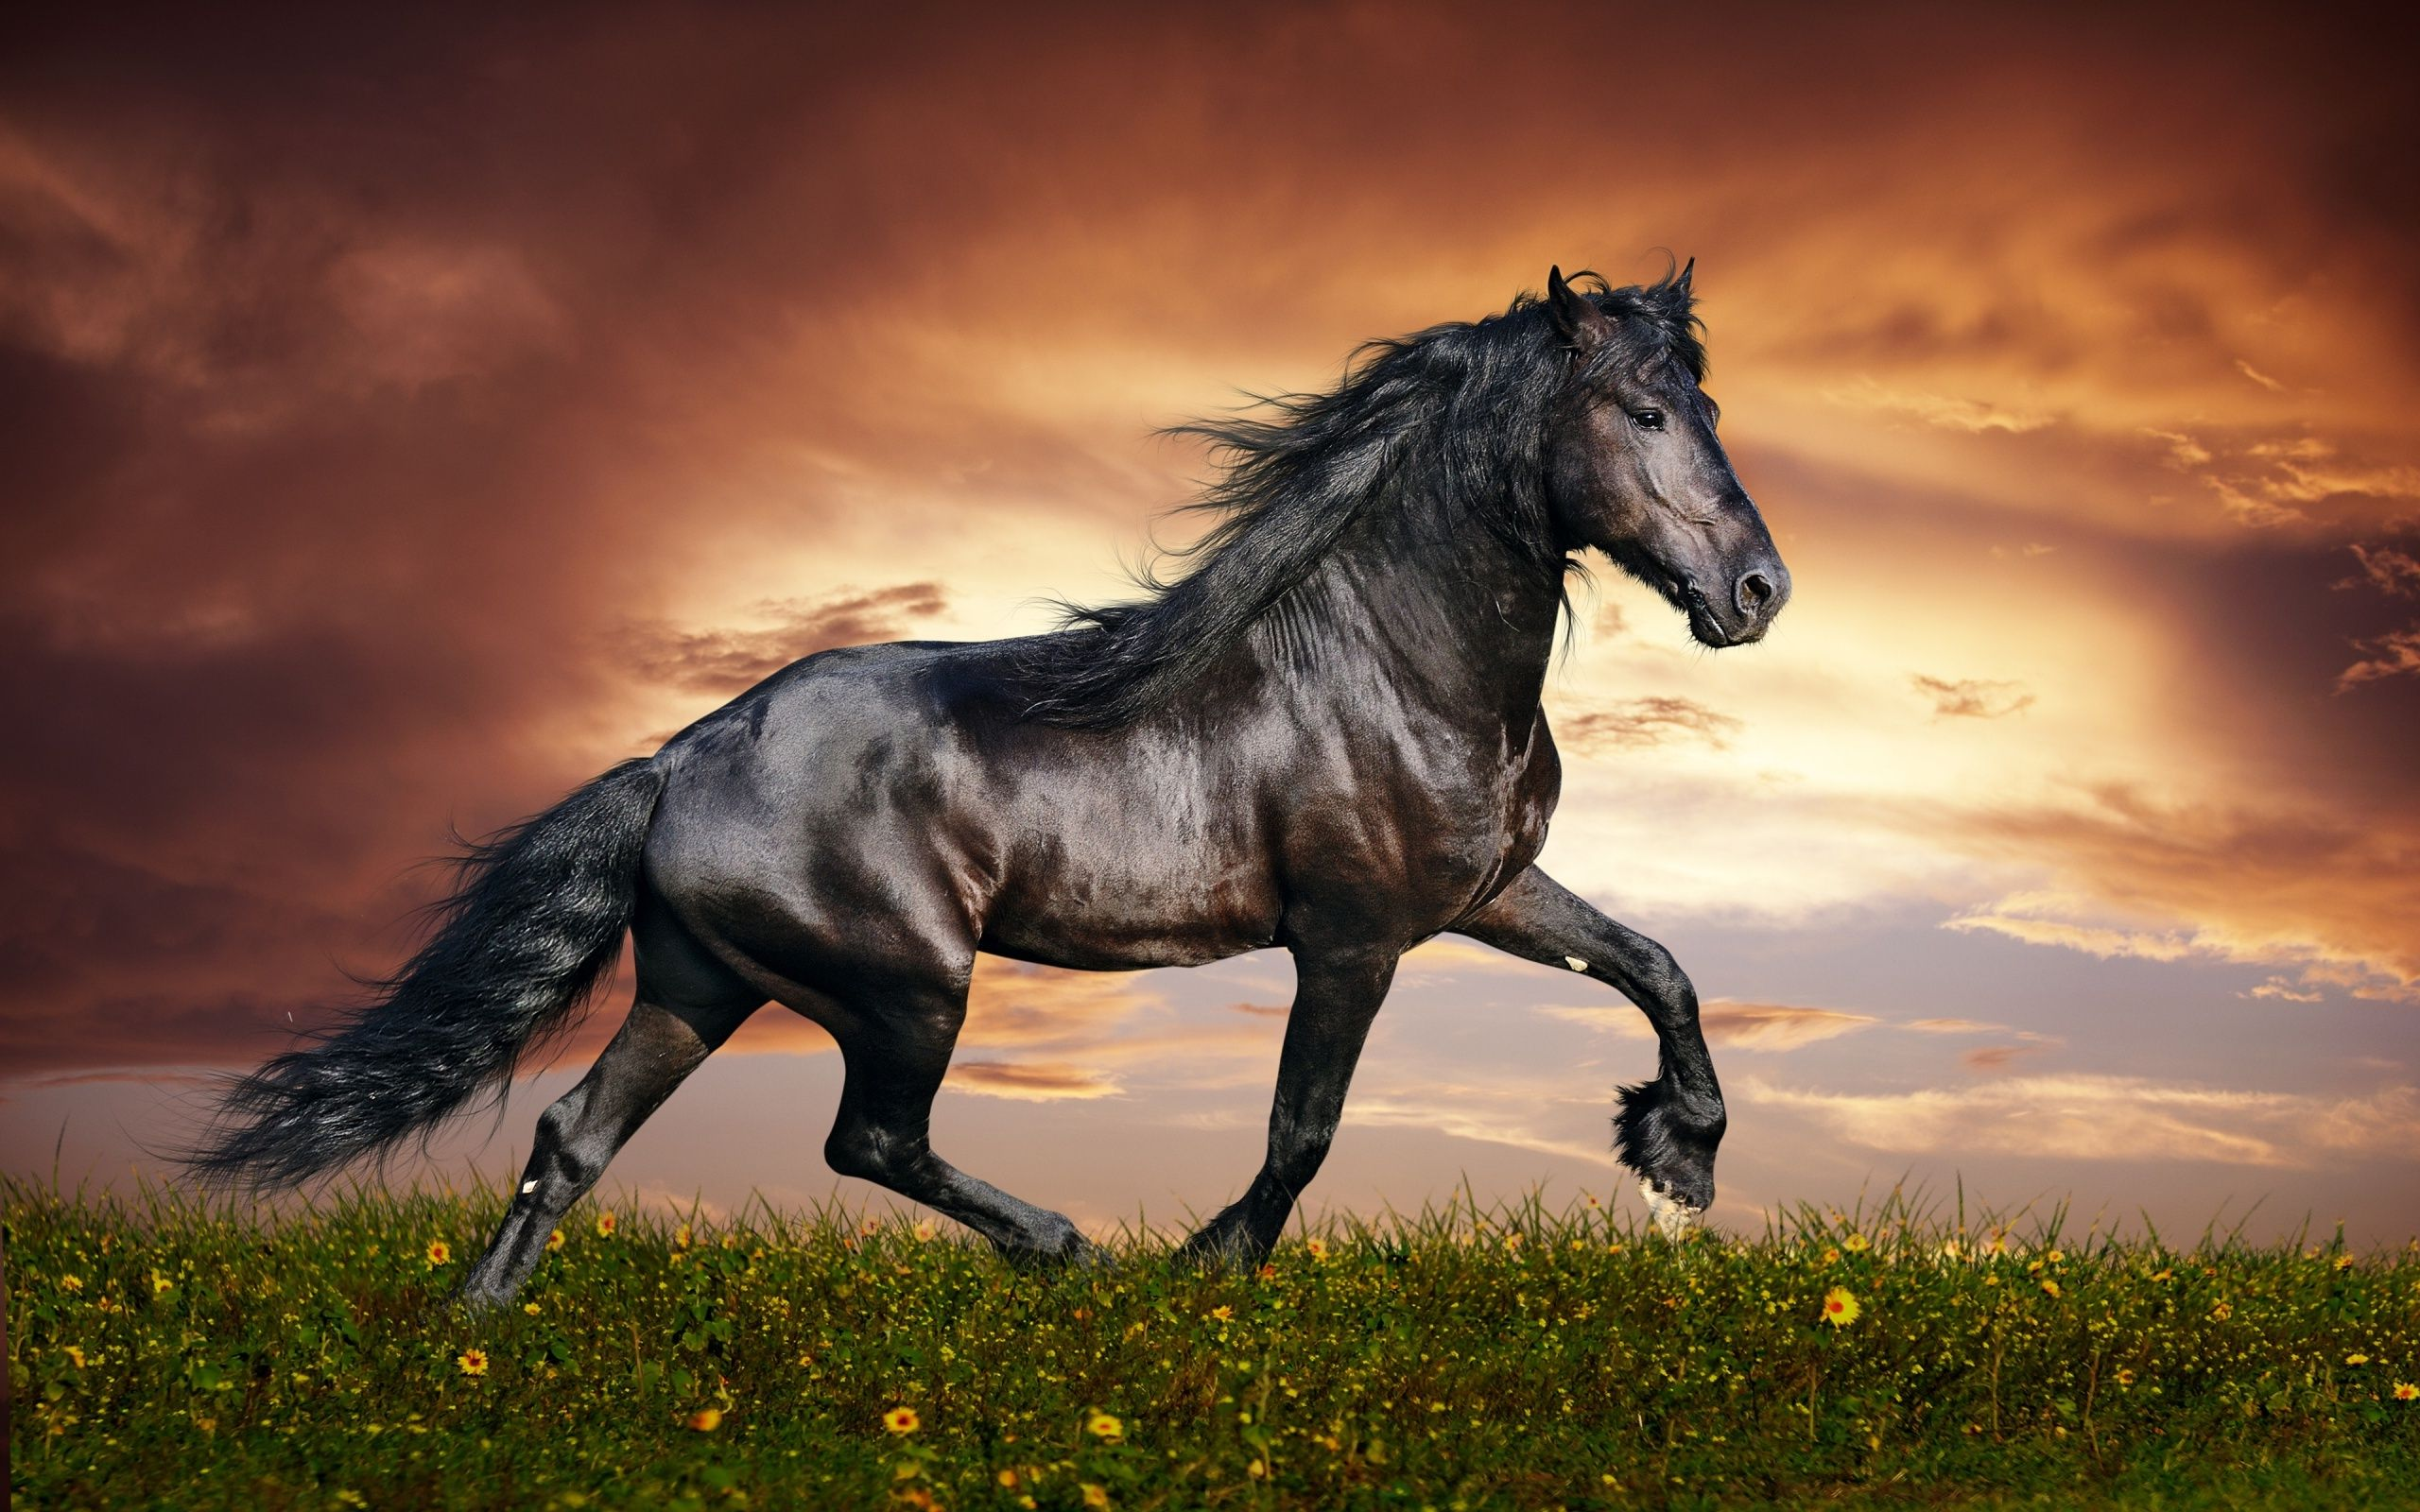 Free Hd Horse Backgrounds Desktop Wallpapers Backgrounds Horse Wallpaper Most Beautiful Horses Horses